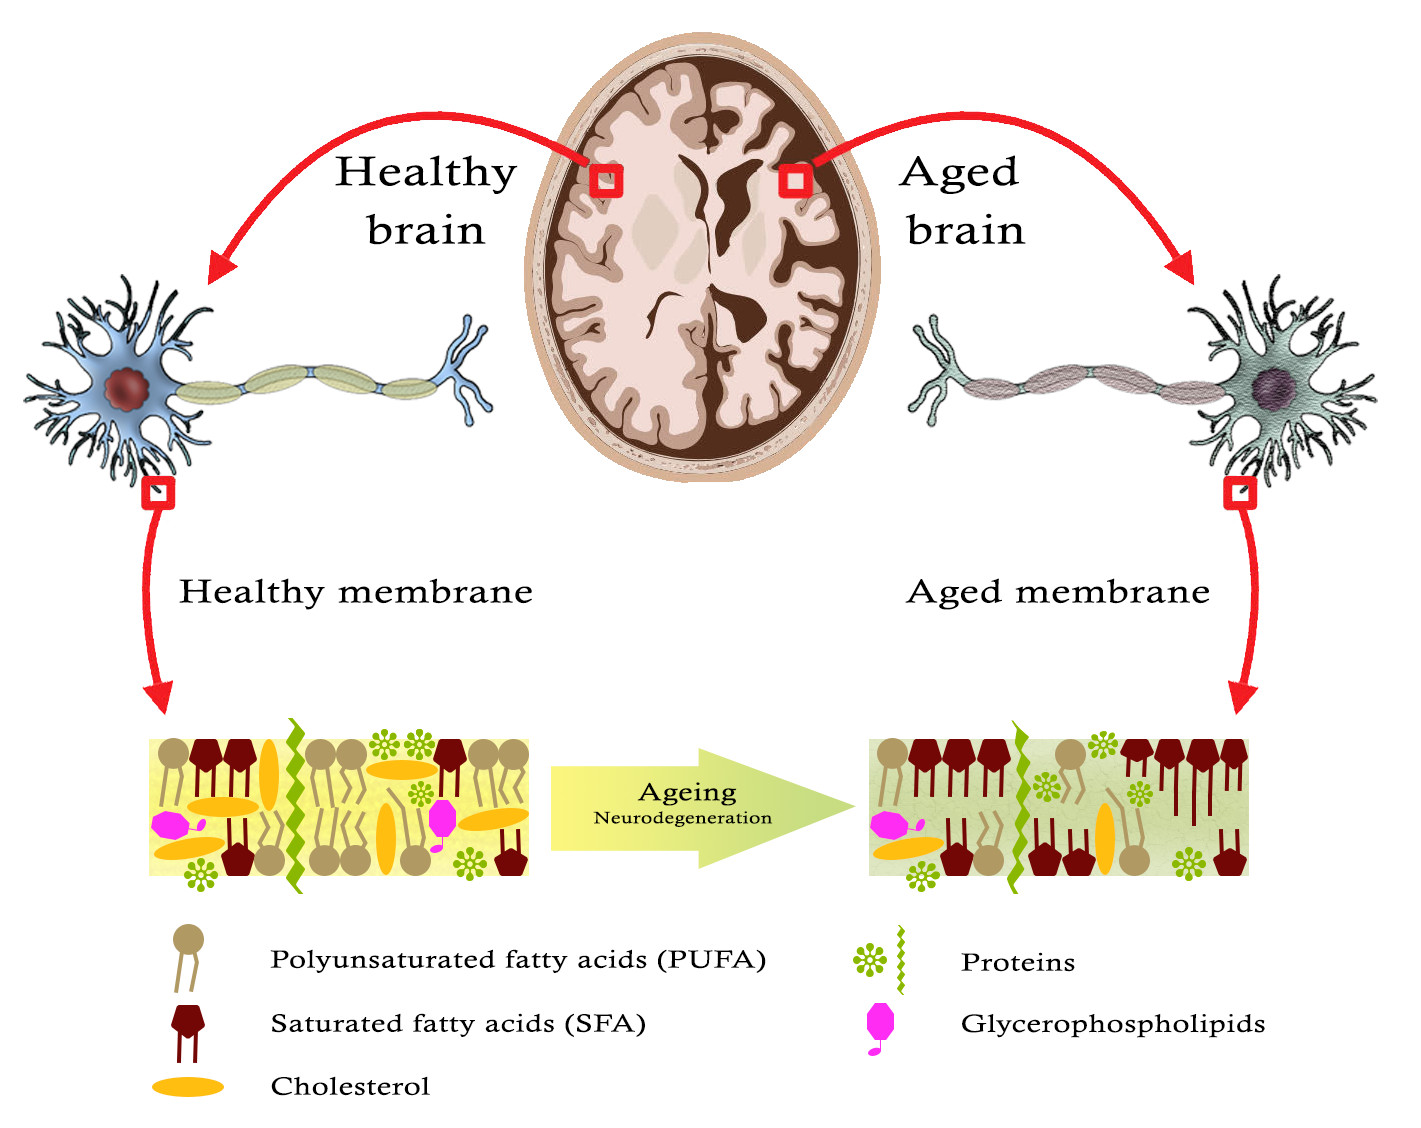 Atlas of Science. Lipids keeps shrinking with aging and neurodegeneration.